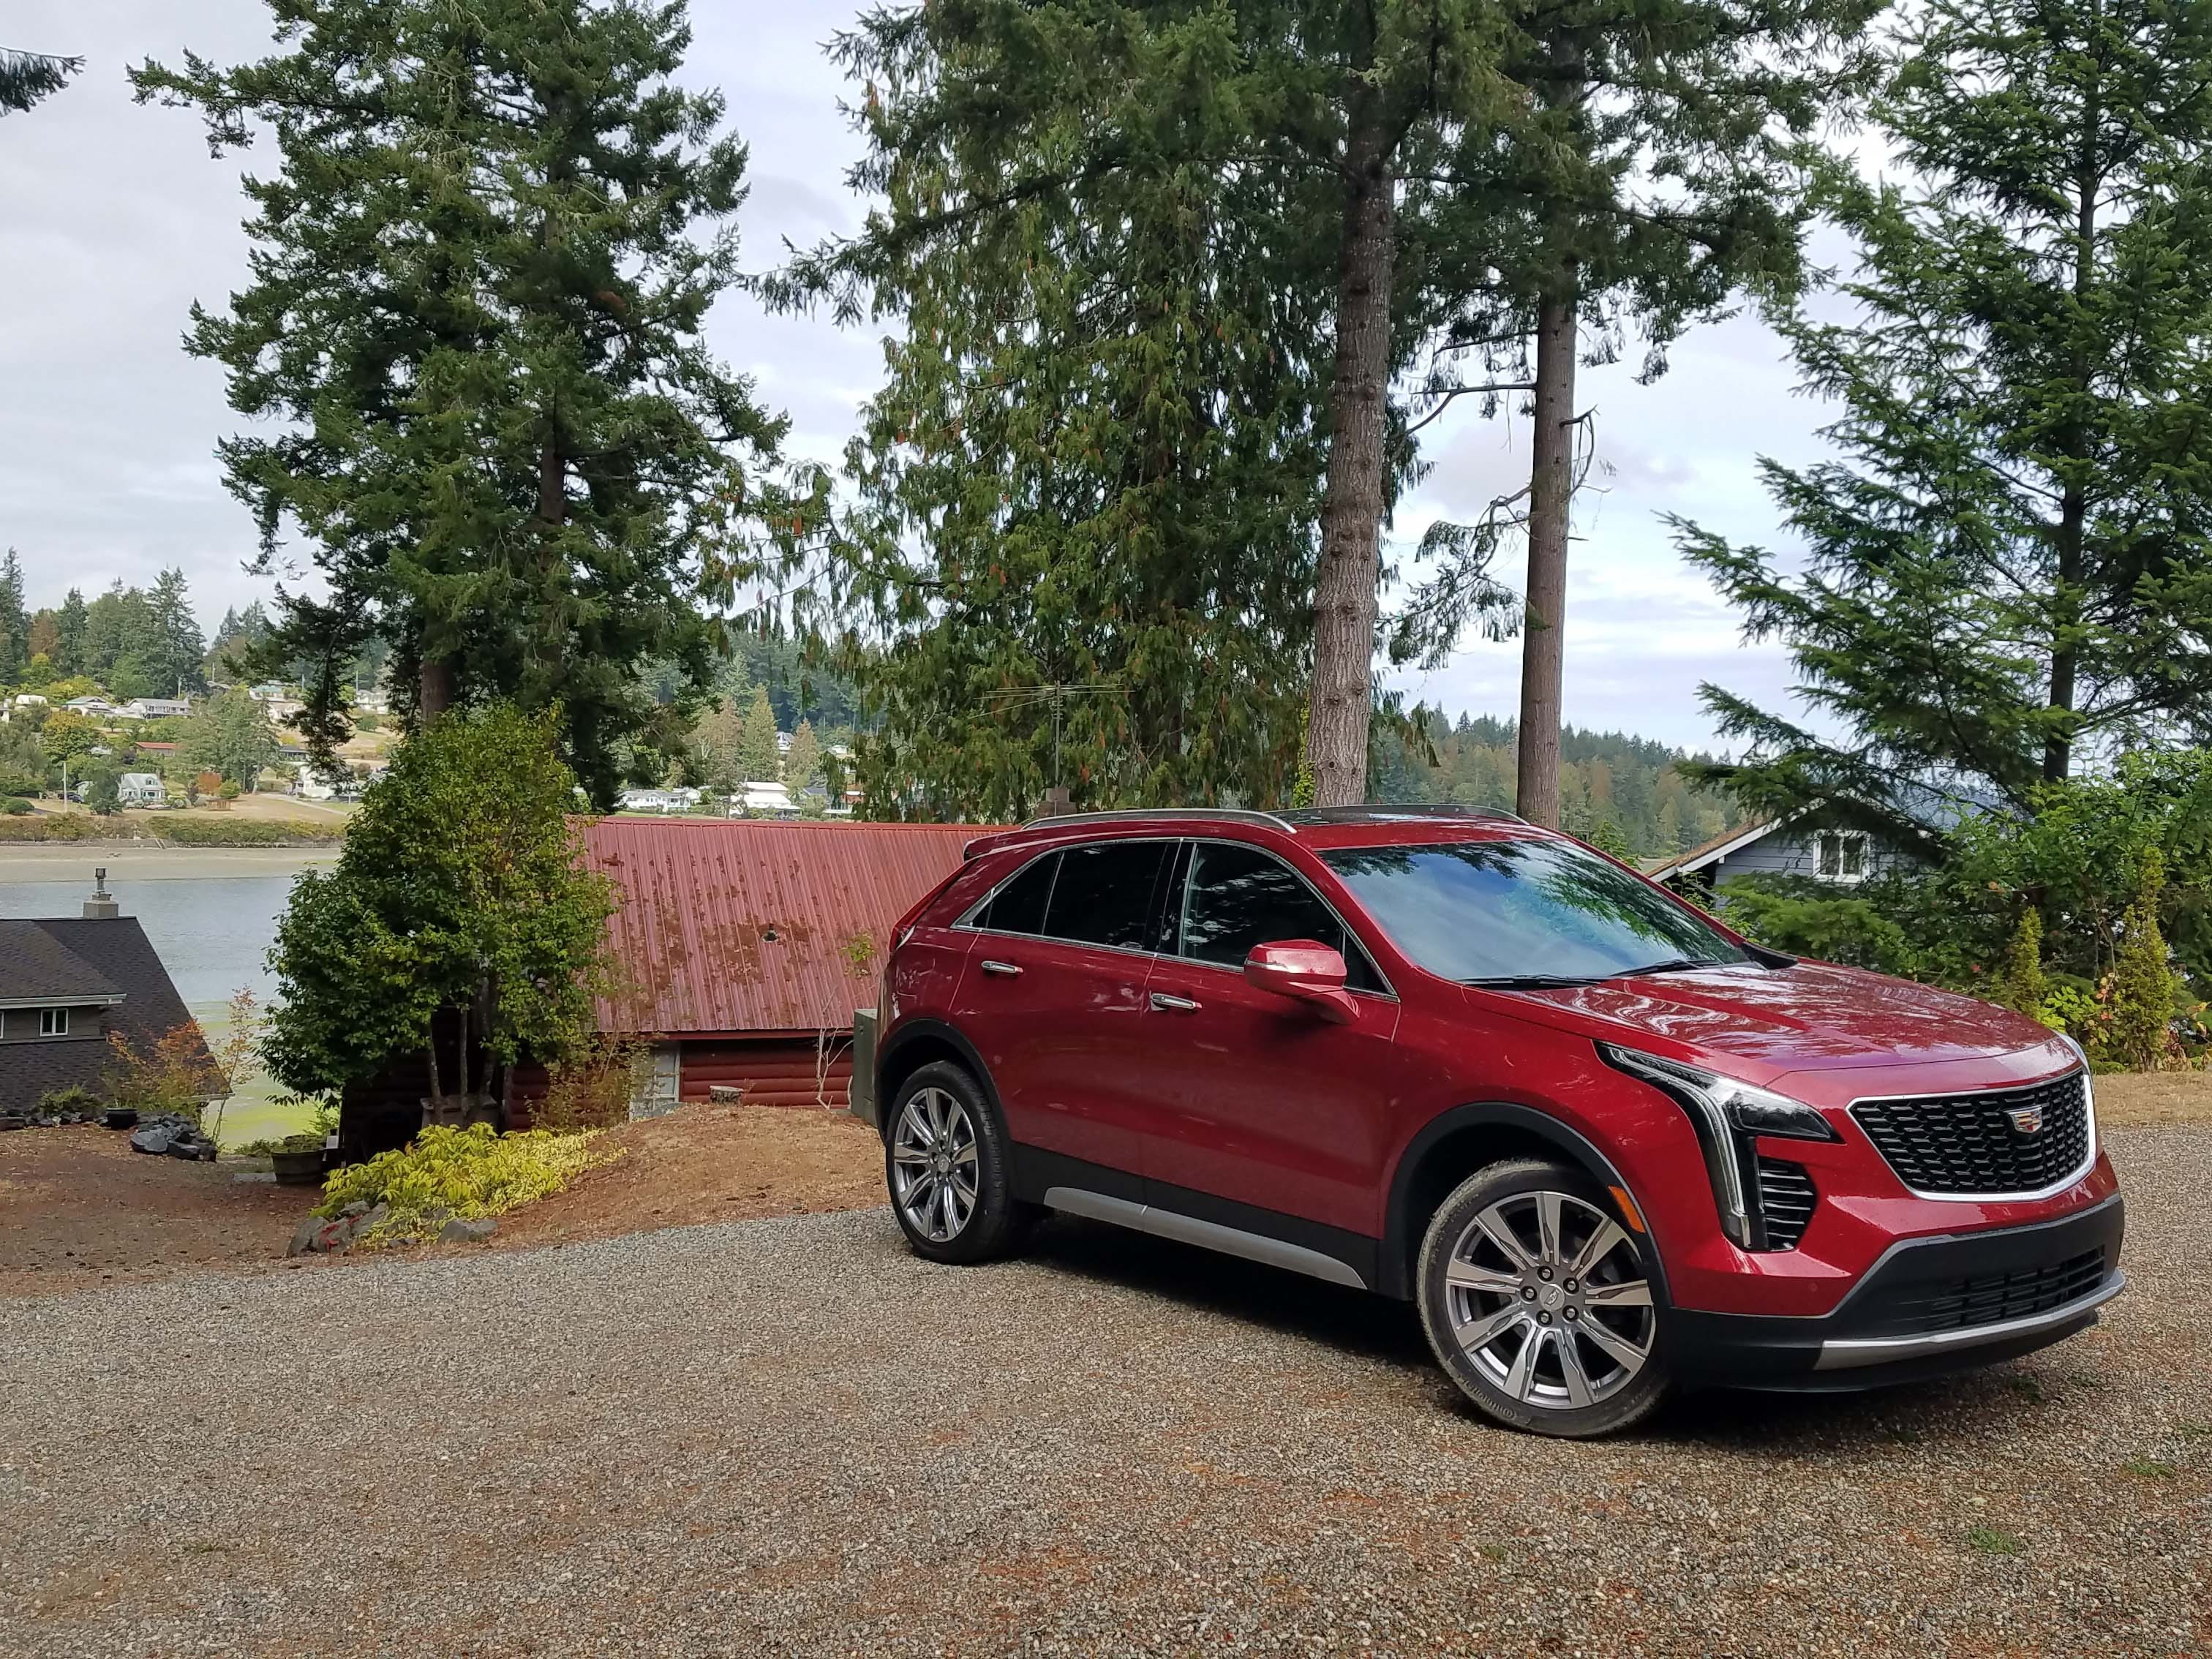 The 2019 Cadillac XT4 is the brand's first subcompact ute — competing against segment mainstays like the BMW X1, Audi A3 and Mercedes GLA. Roomy and powerful, the XT4 is the largest SUV in the segment.